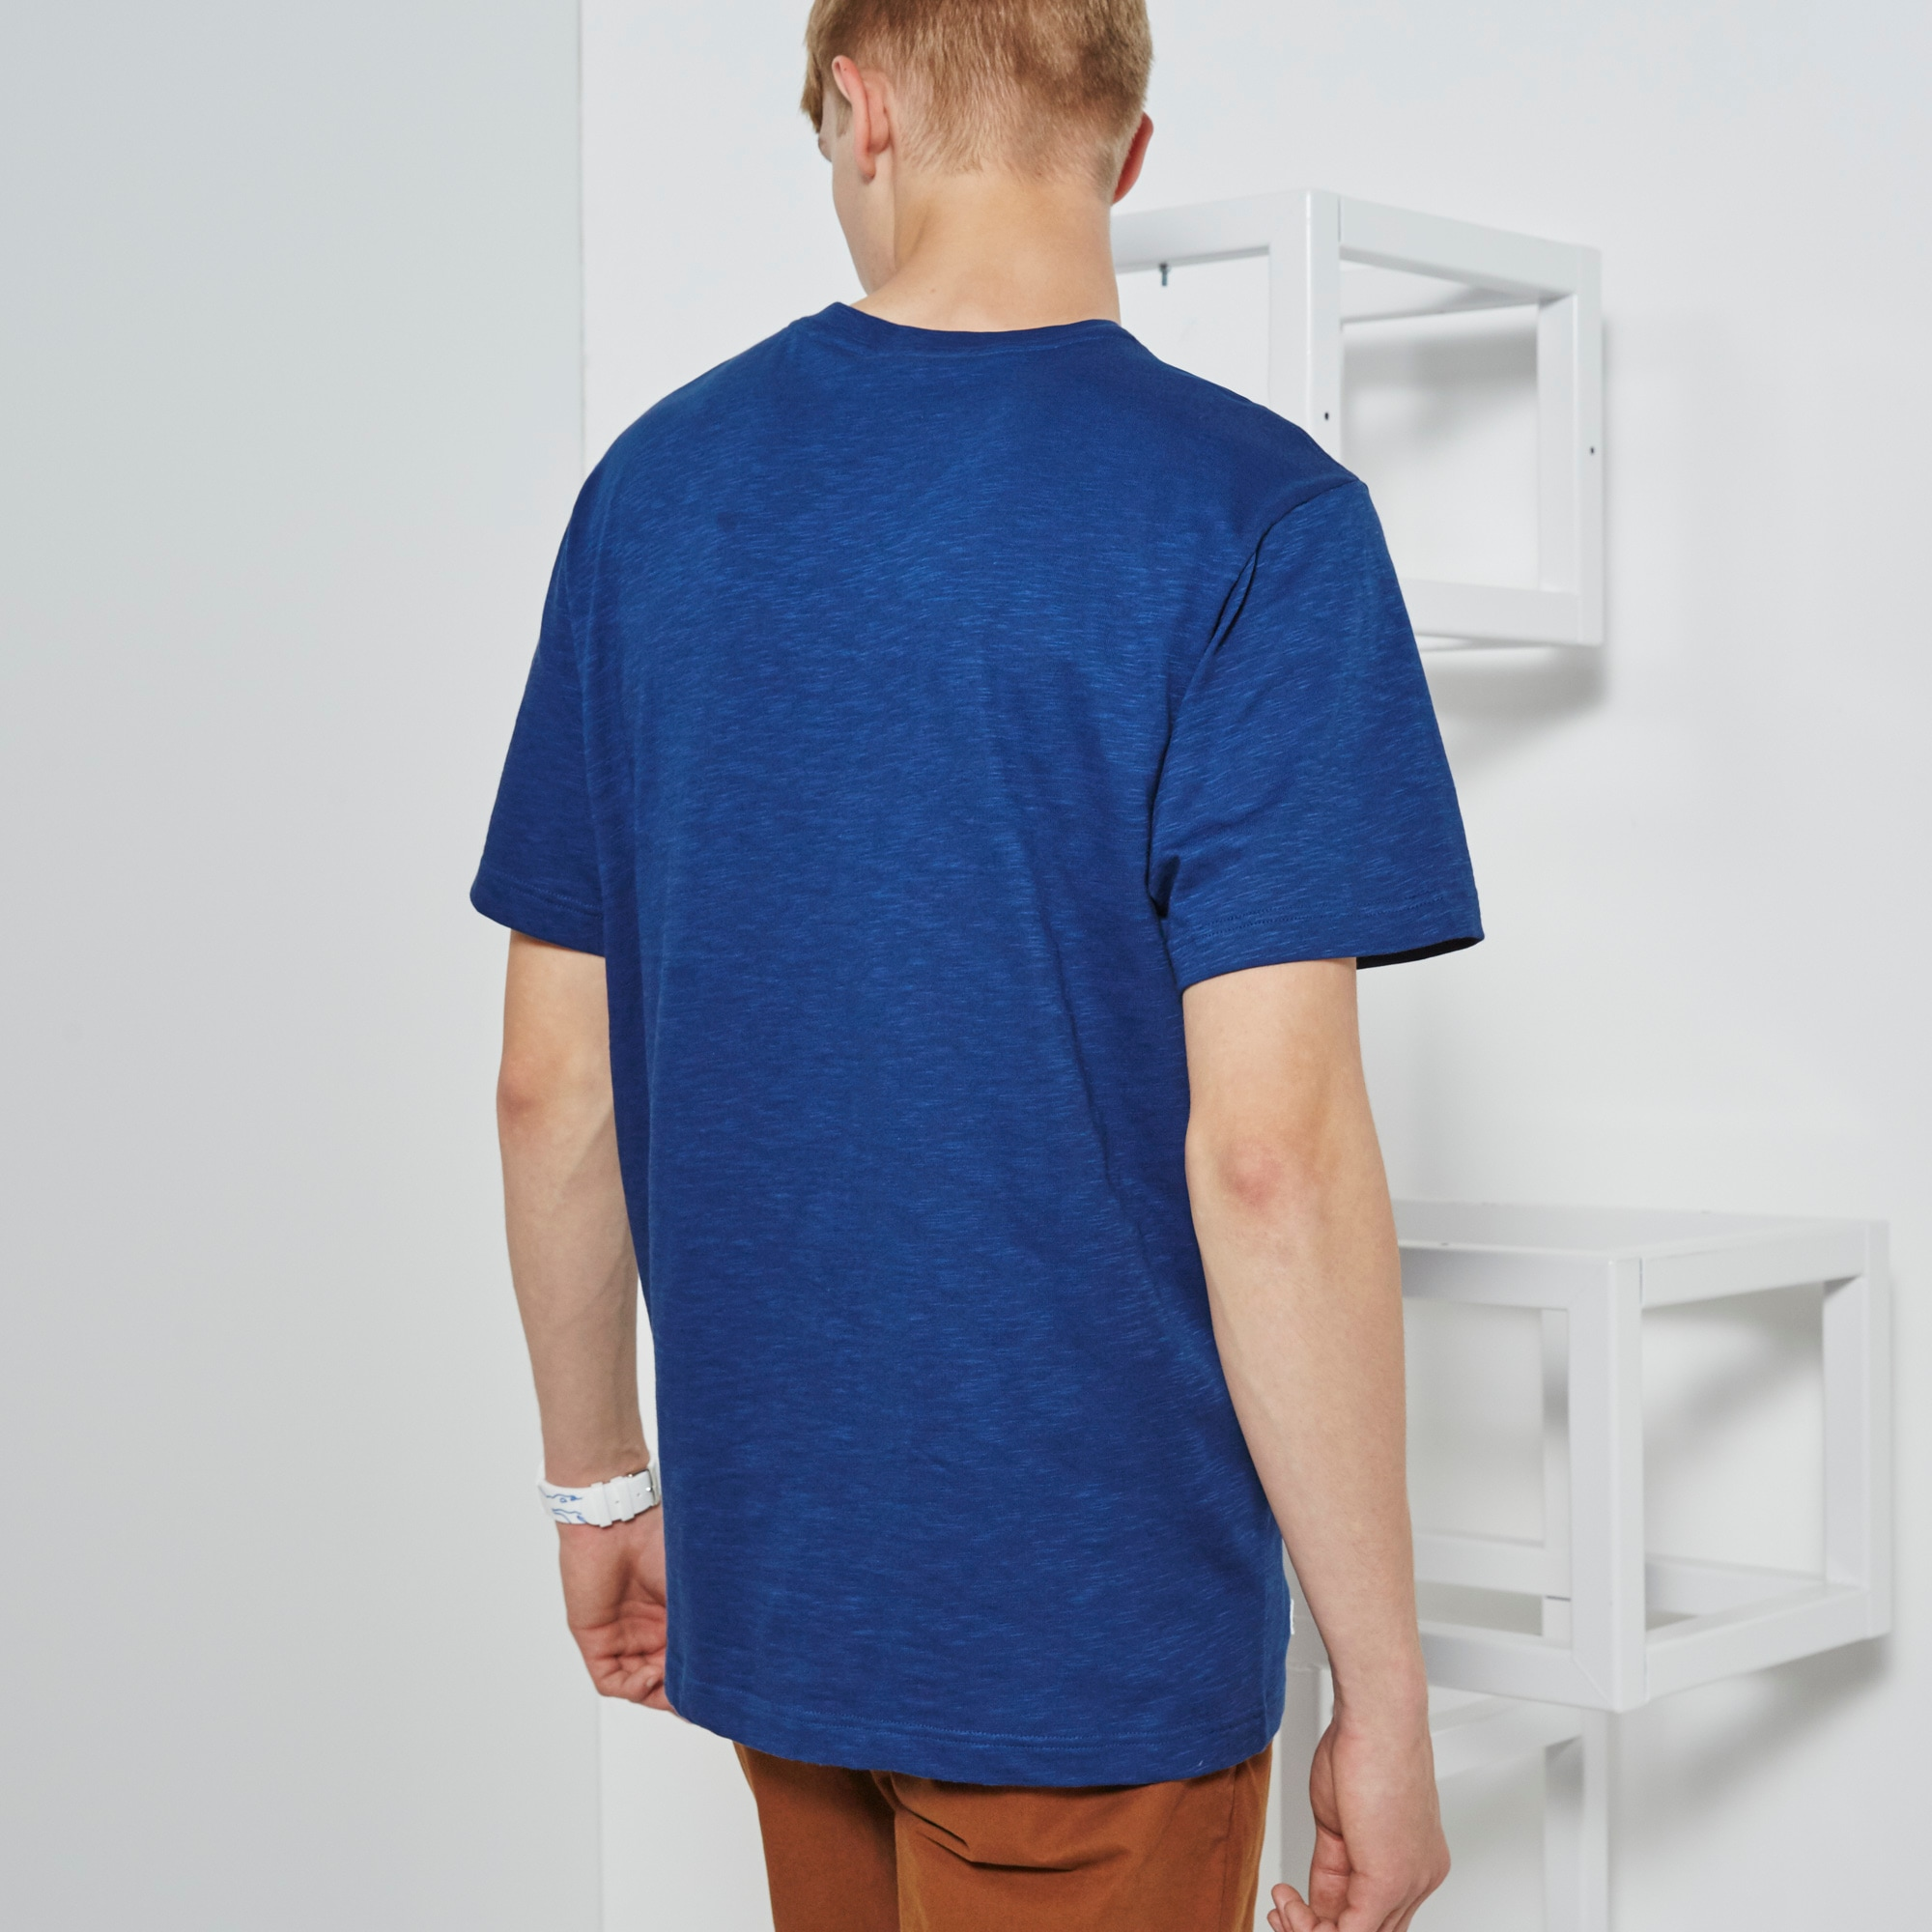 Lacoste Jersey T Crew With Shirt Neck Toujours In Live Cours Unisex 1xqawBPE0